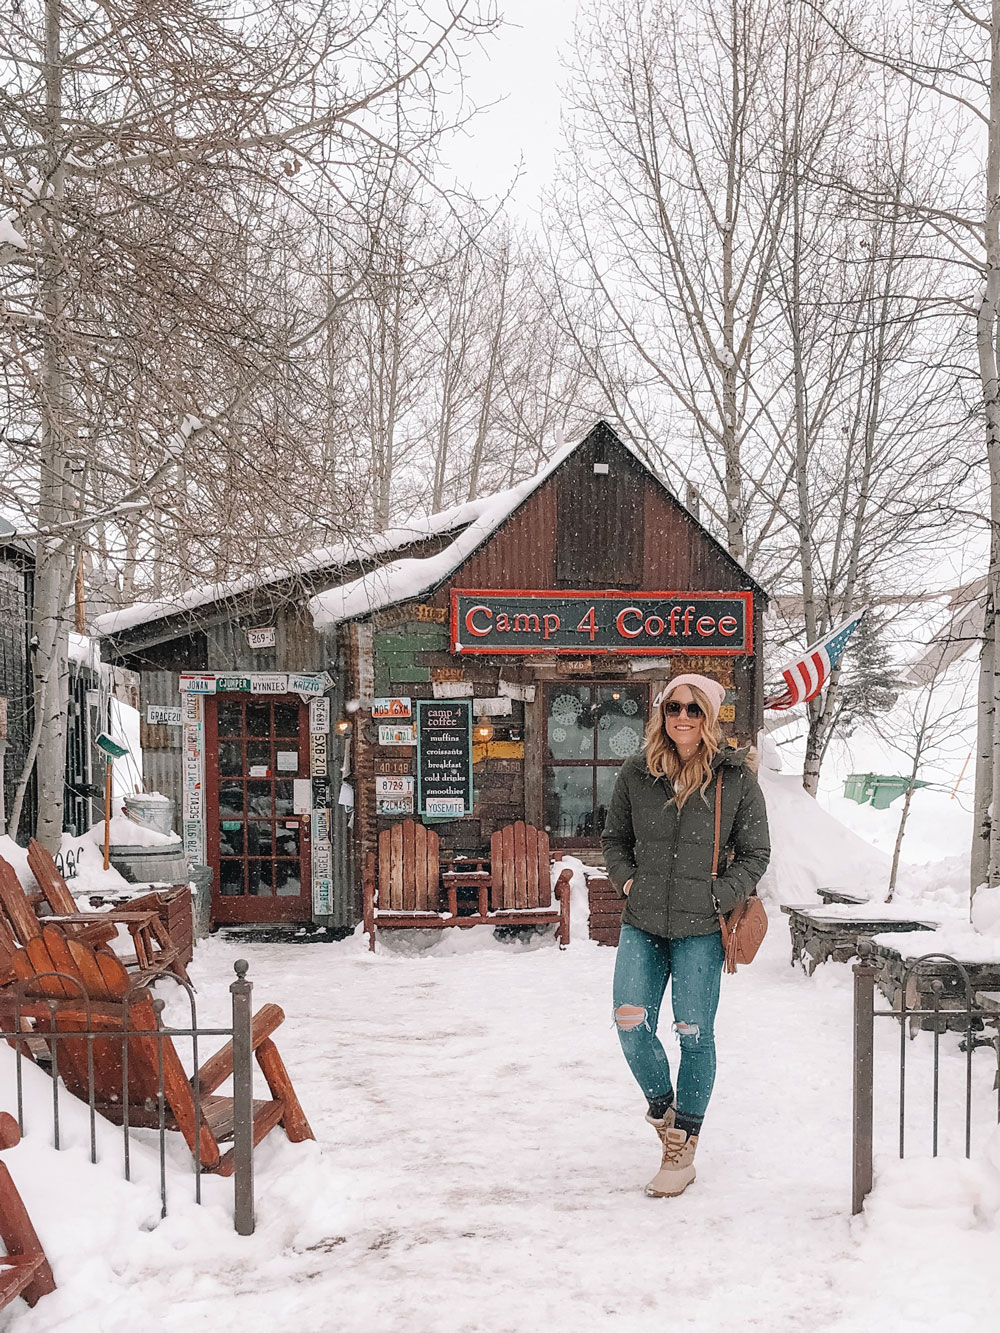 Where to eat in Crested Butte, Colorado, according to Amanda's OK